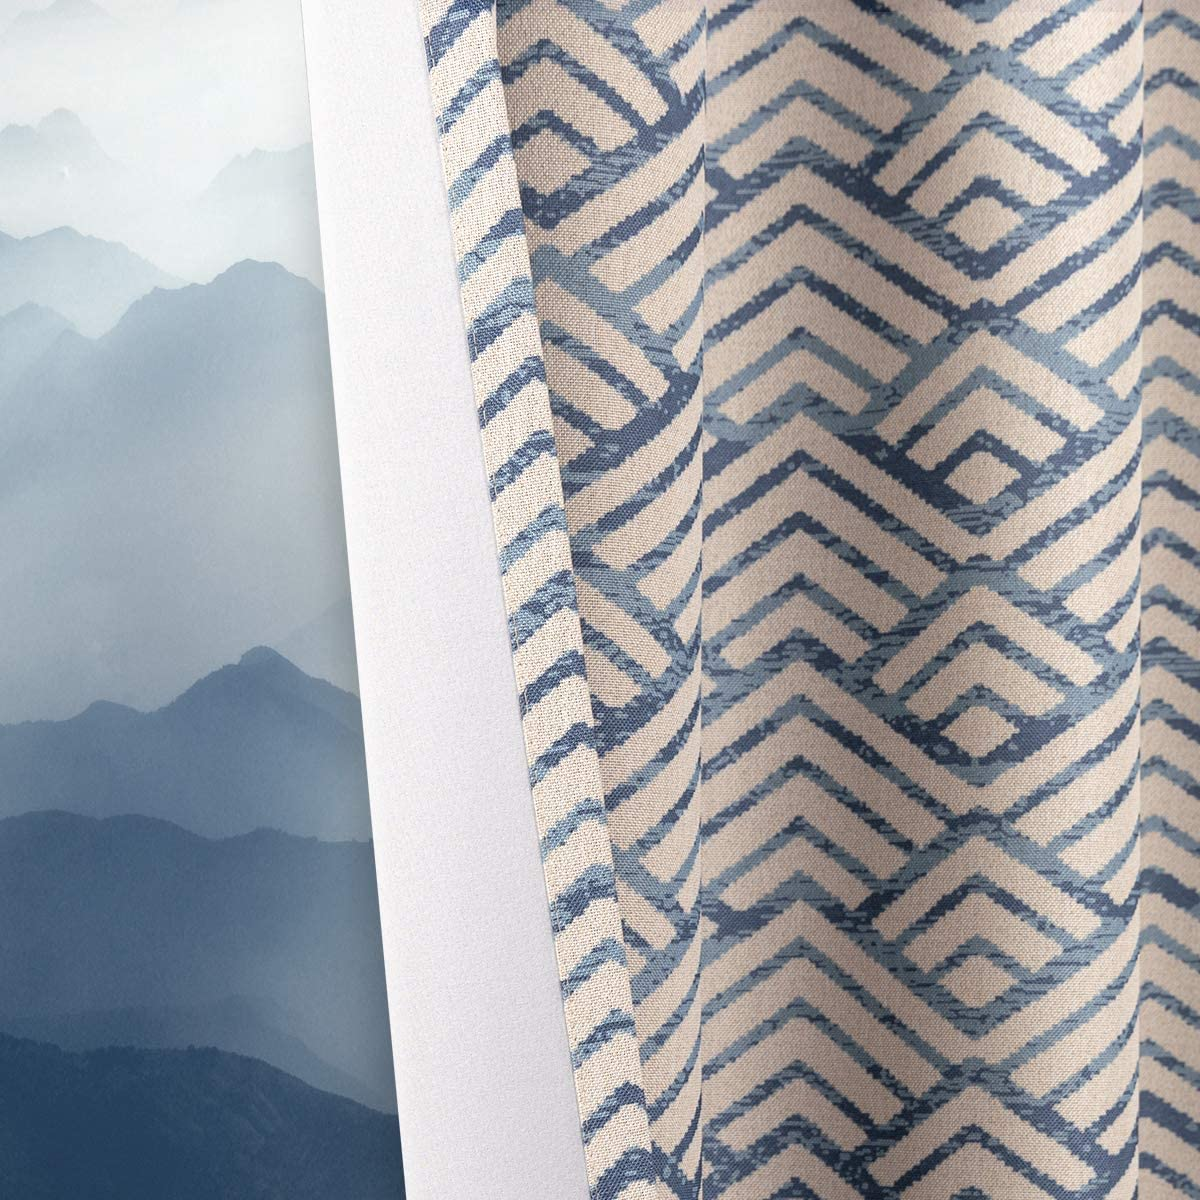 Topick Hill Printed Curtains for Bedroom Drapes Linen Textured Curtain Panels Window Treatments Room Darkening for Living Room 2 Panels 63 Inches Long Blue